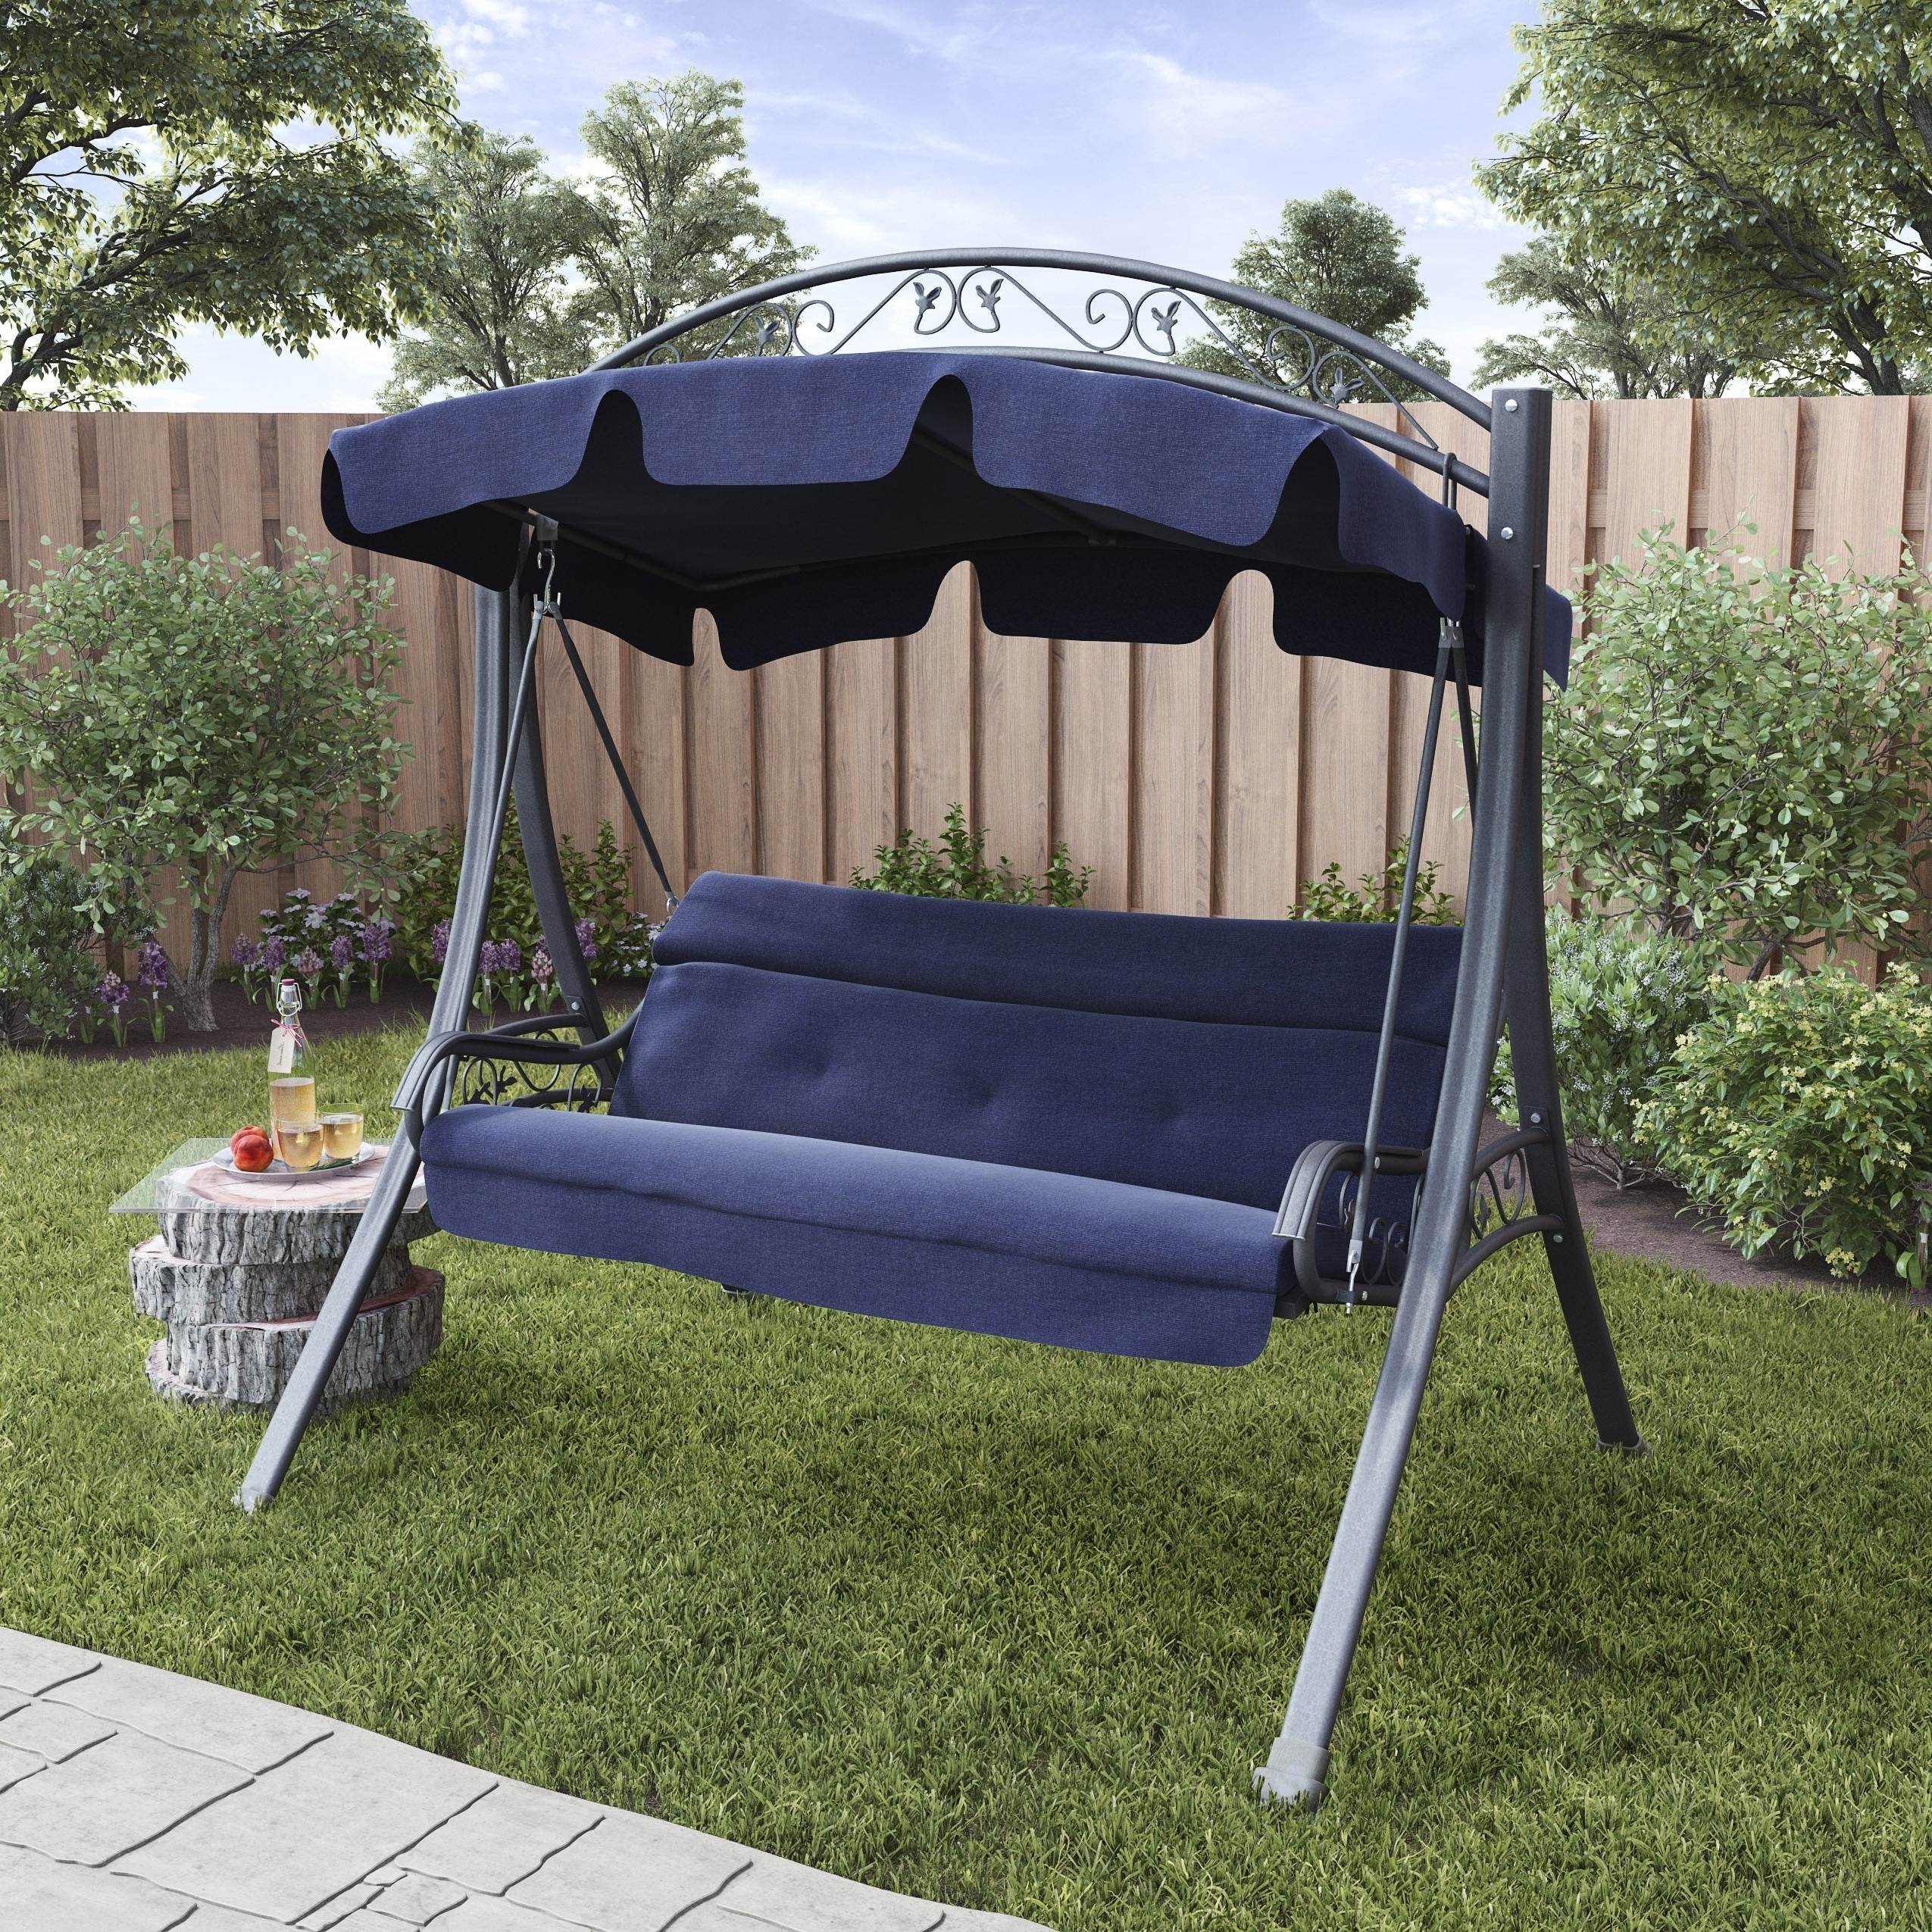 Famous Canopy Patio Porch Swings With Pillows And Cup Holders With Corliving Nantucket Patio Swing With Arched Canopy (View 7 of 25)